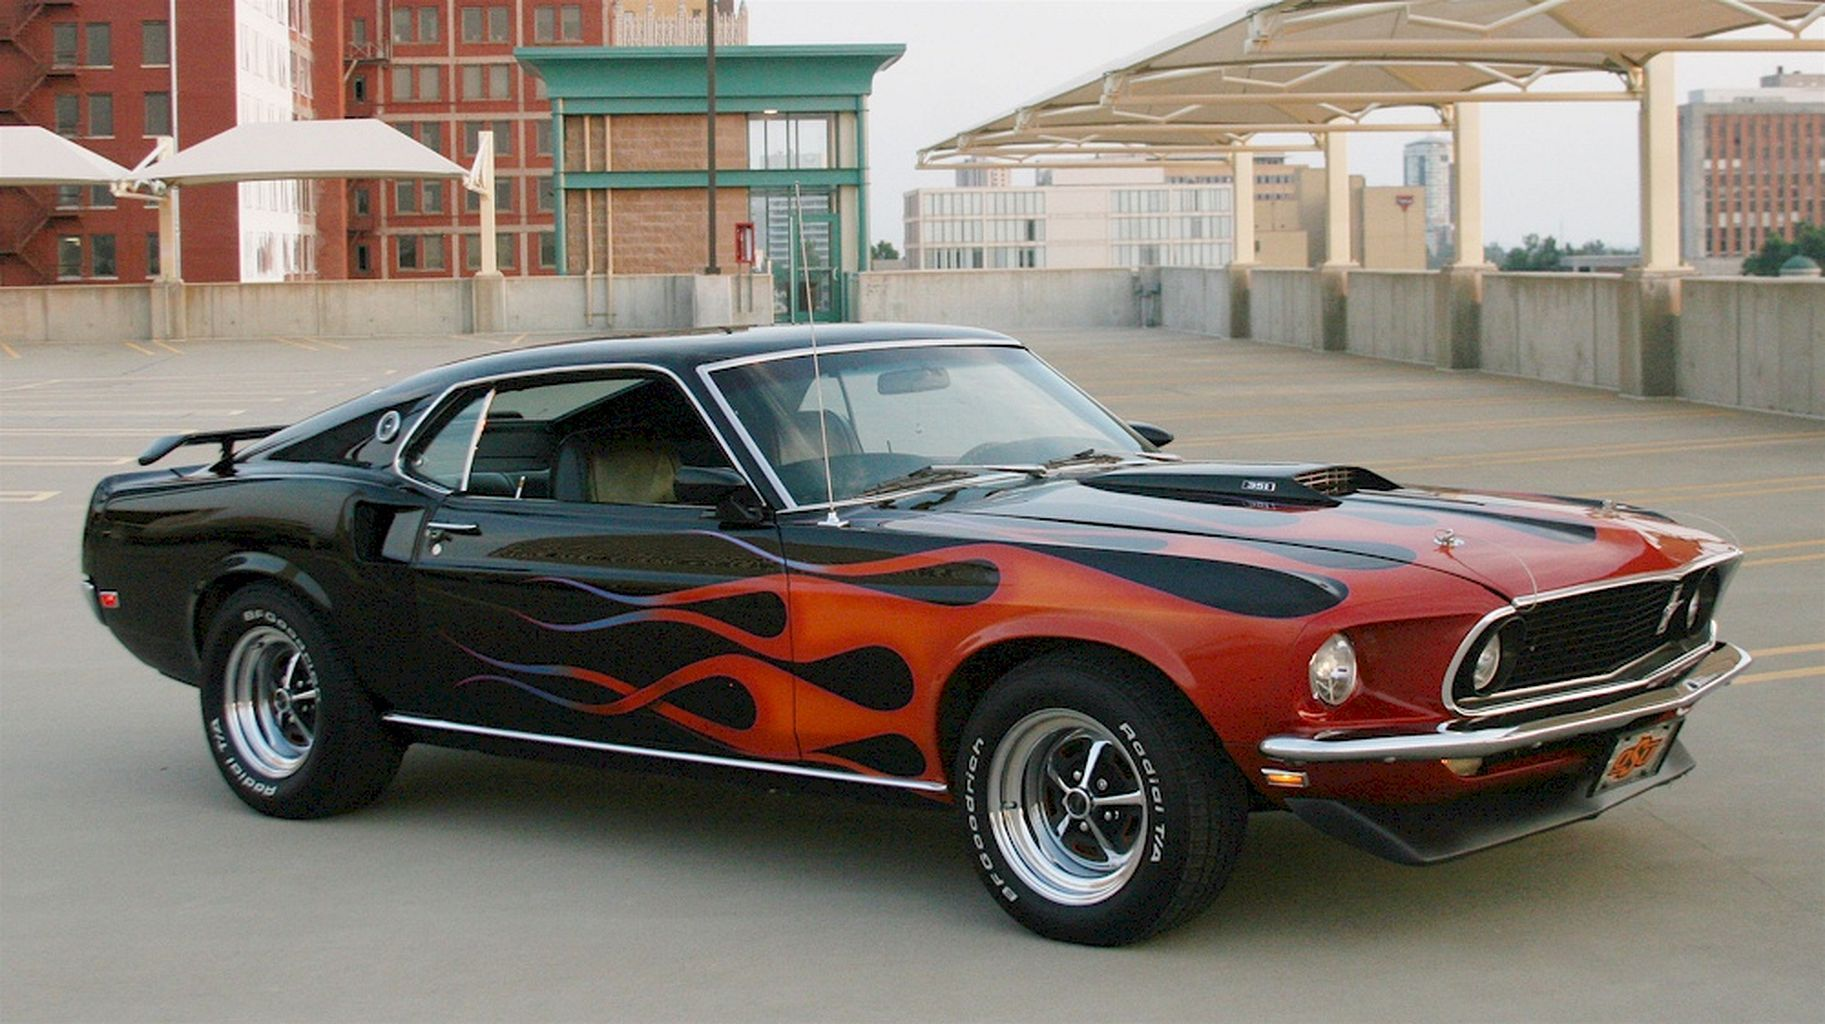 Awesome car of the year 1967 to 1969 ford mustang gt fastback https